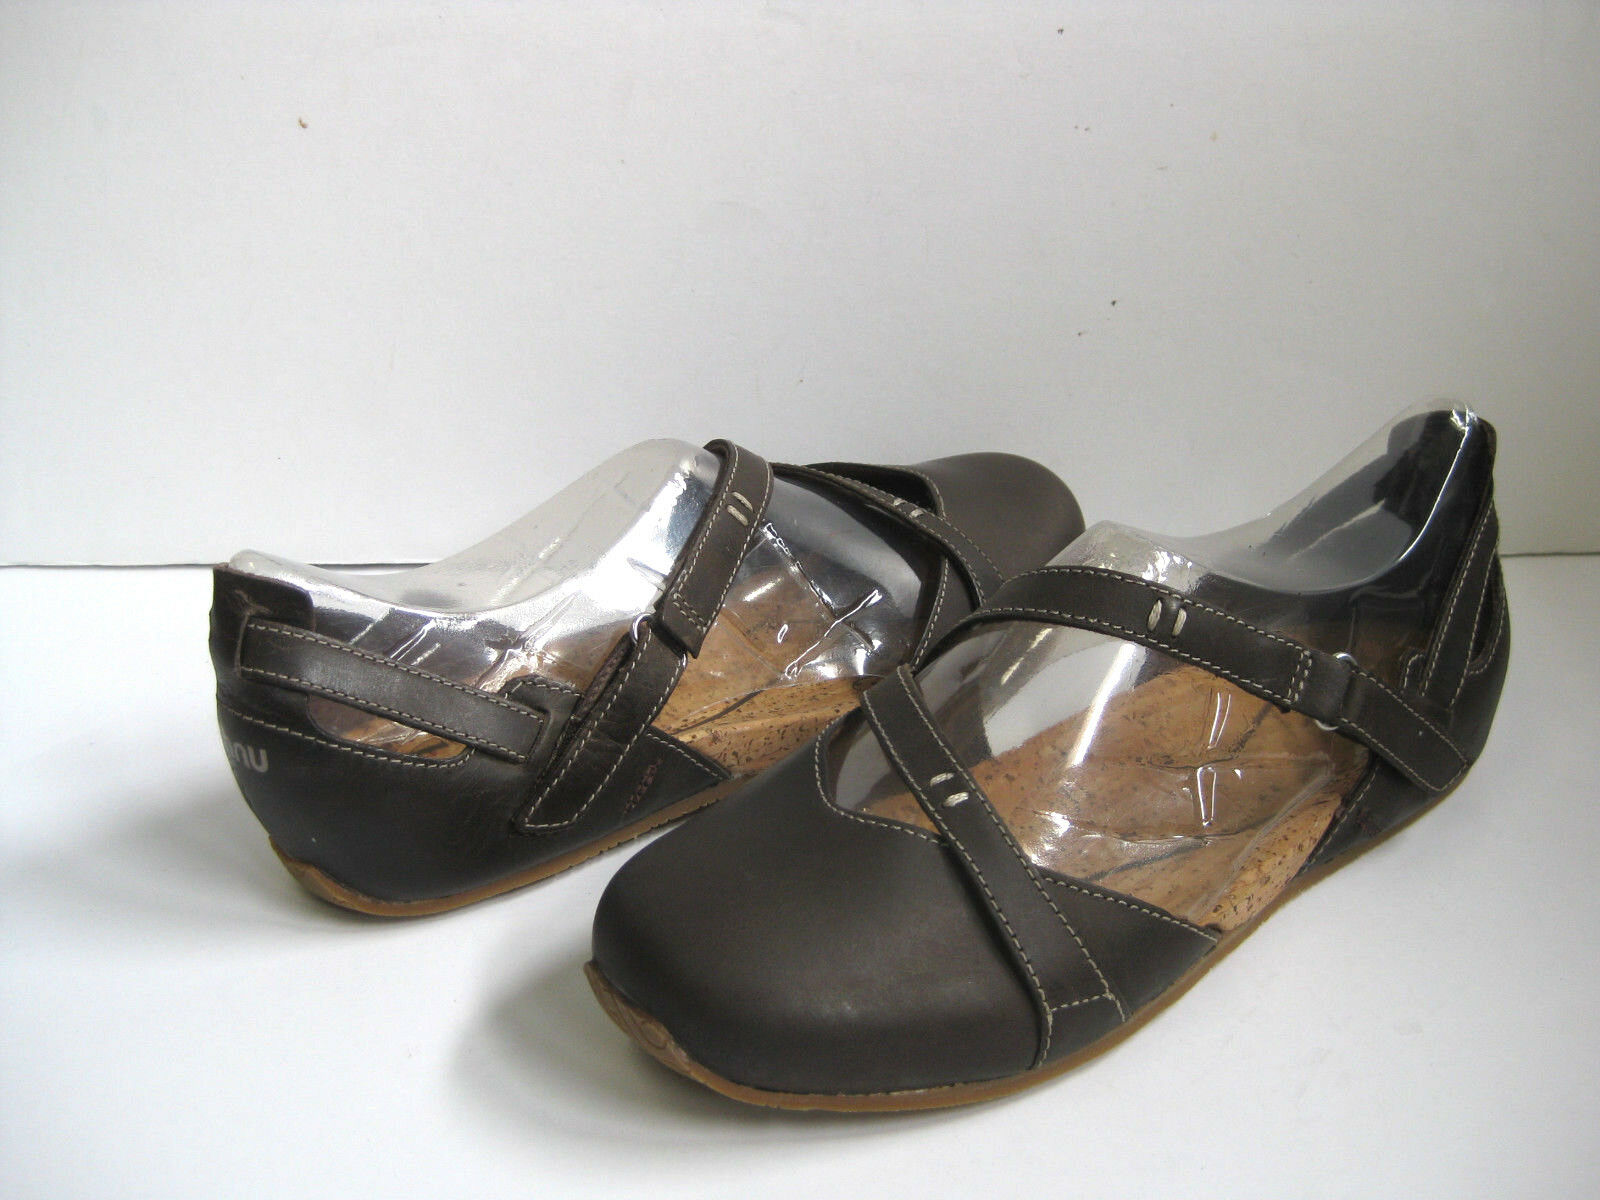 AHNU TULLIA II WOMEN MARY JANES LEATHER PORTER US 7  UK 5.5  EU 38  JP 24